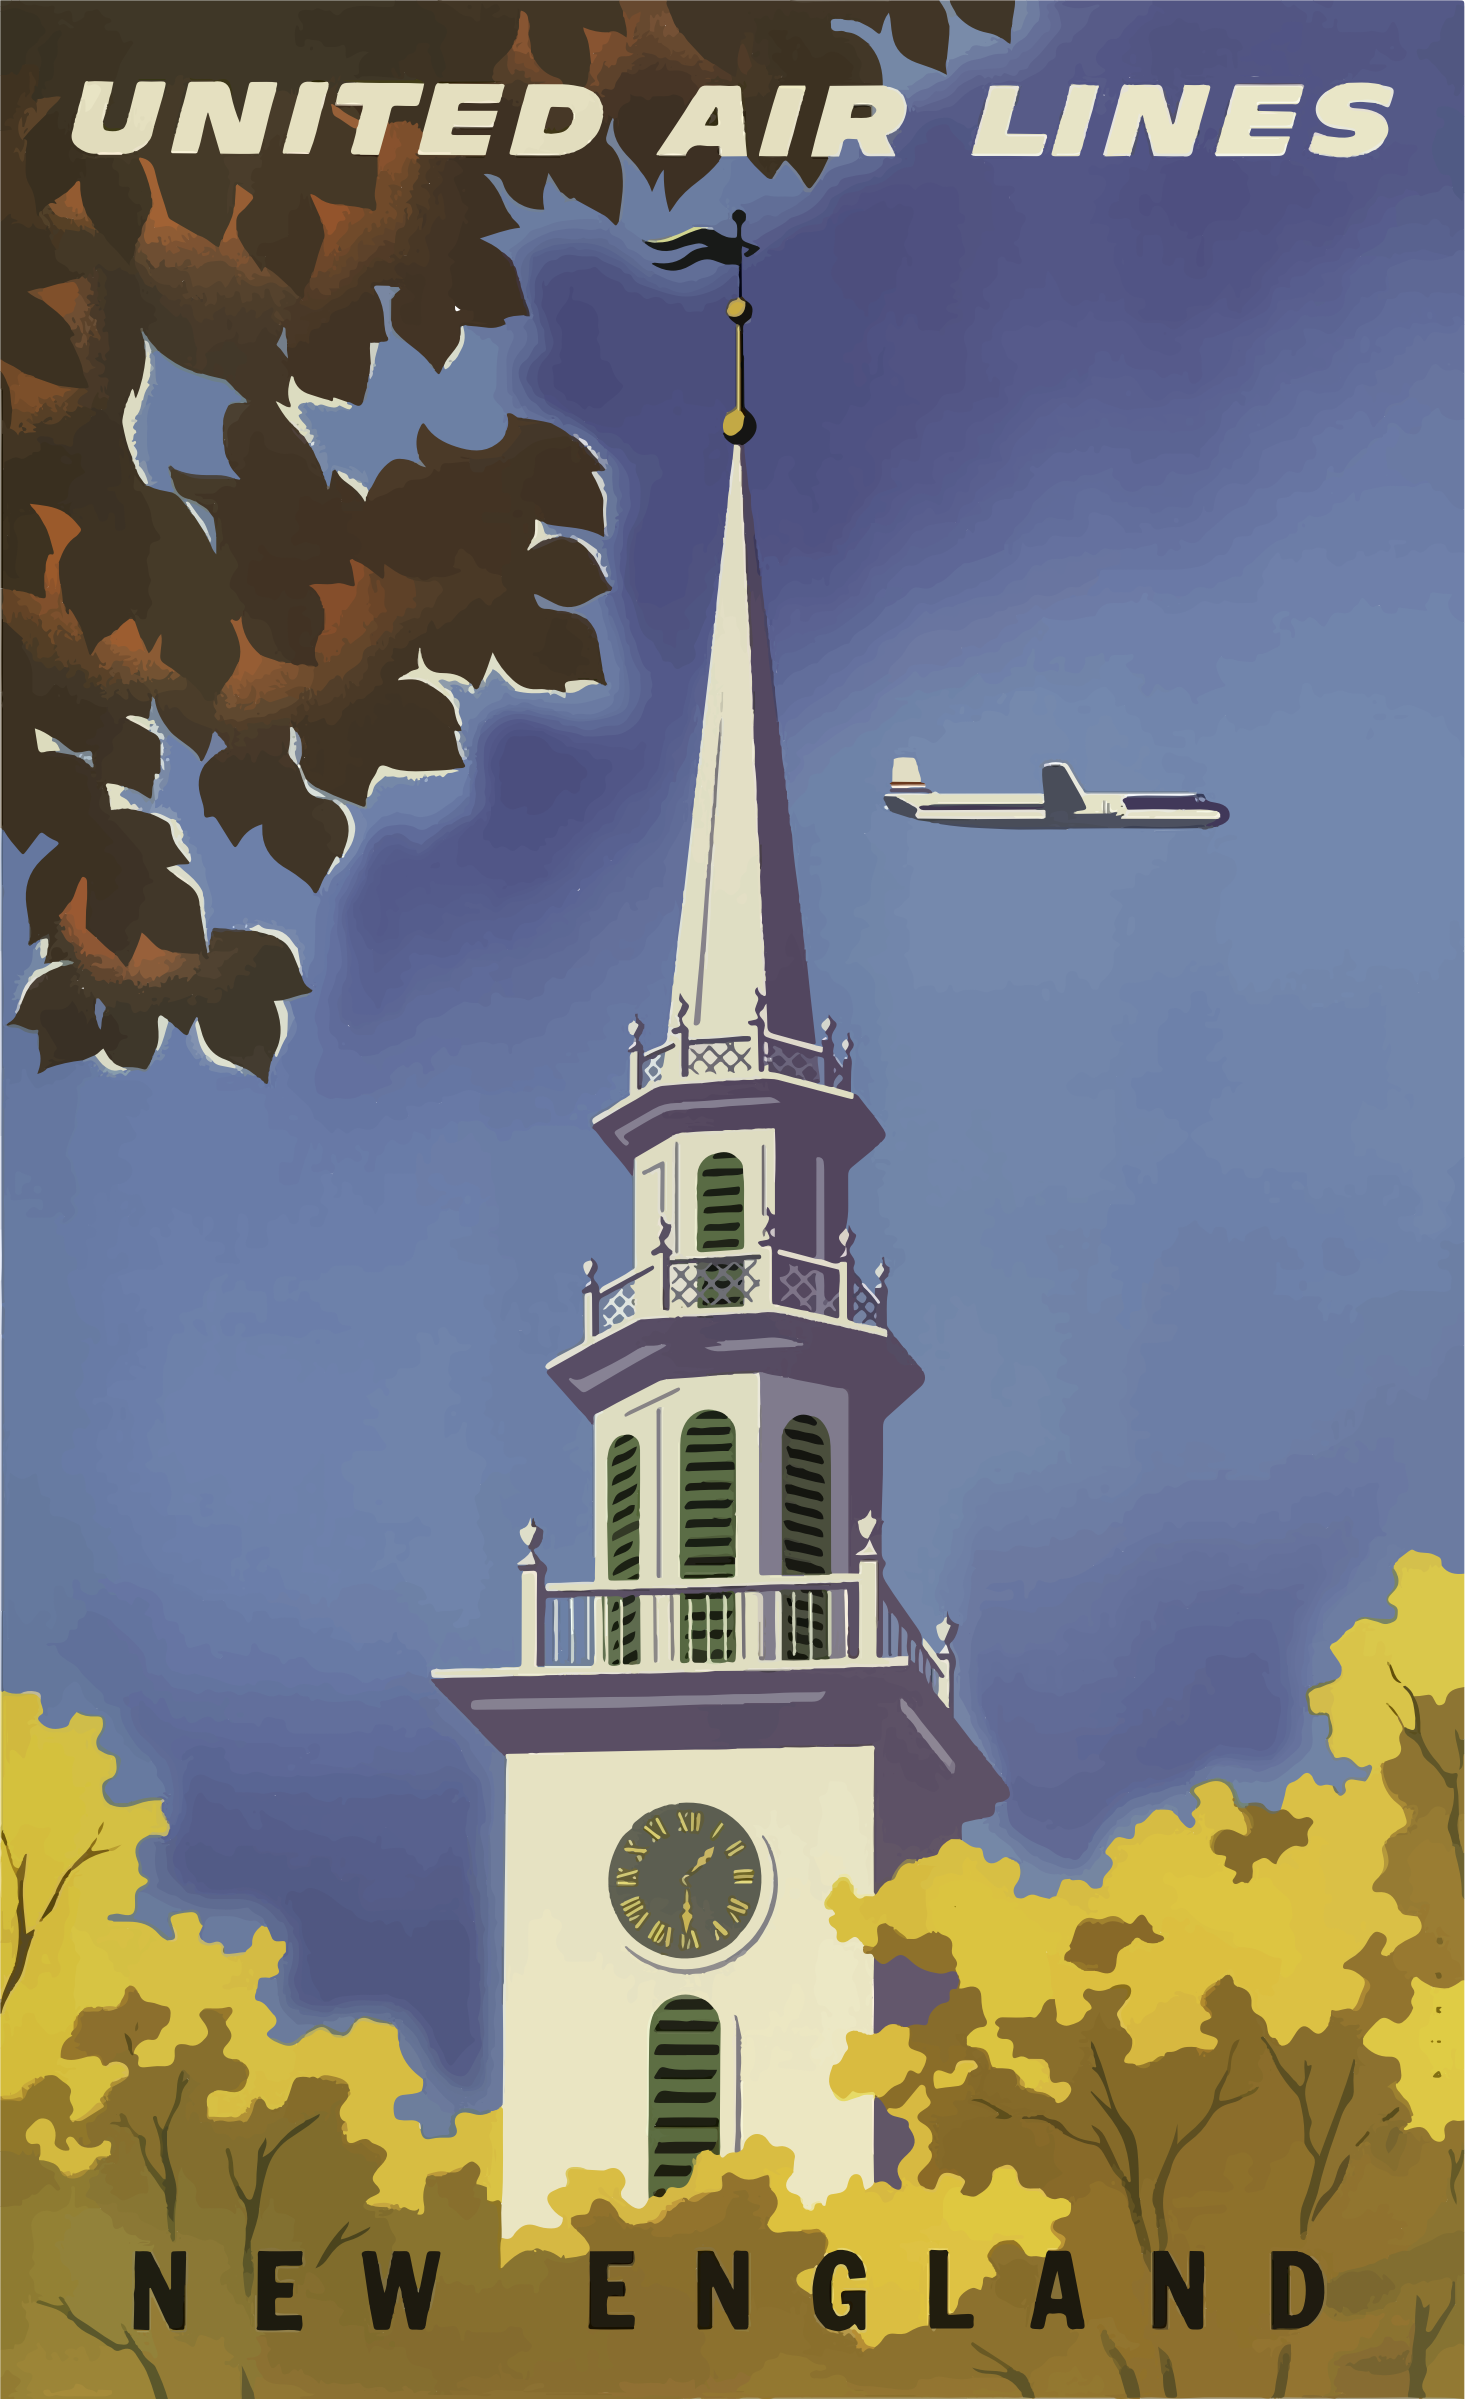 Vintage Travel Poster New England USA by GDJ